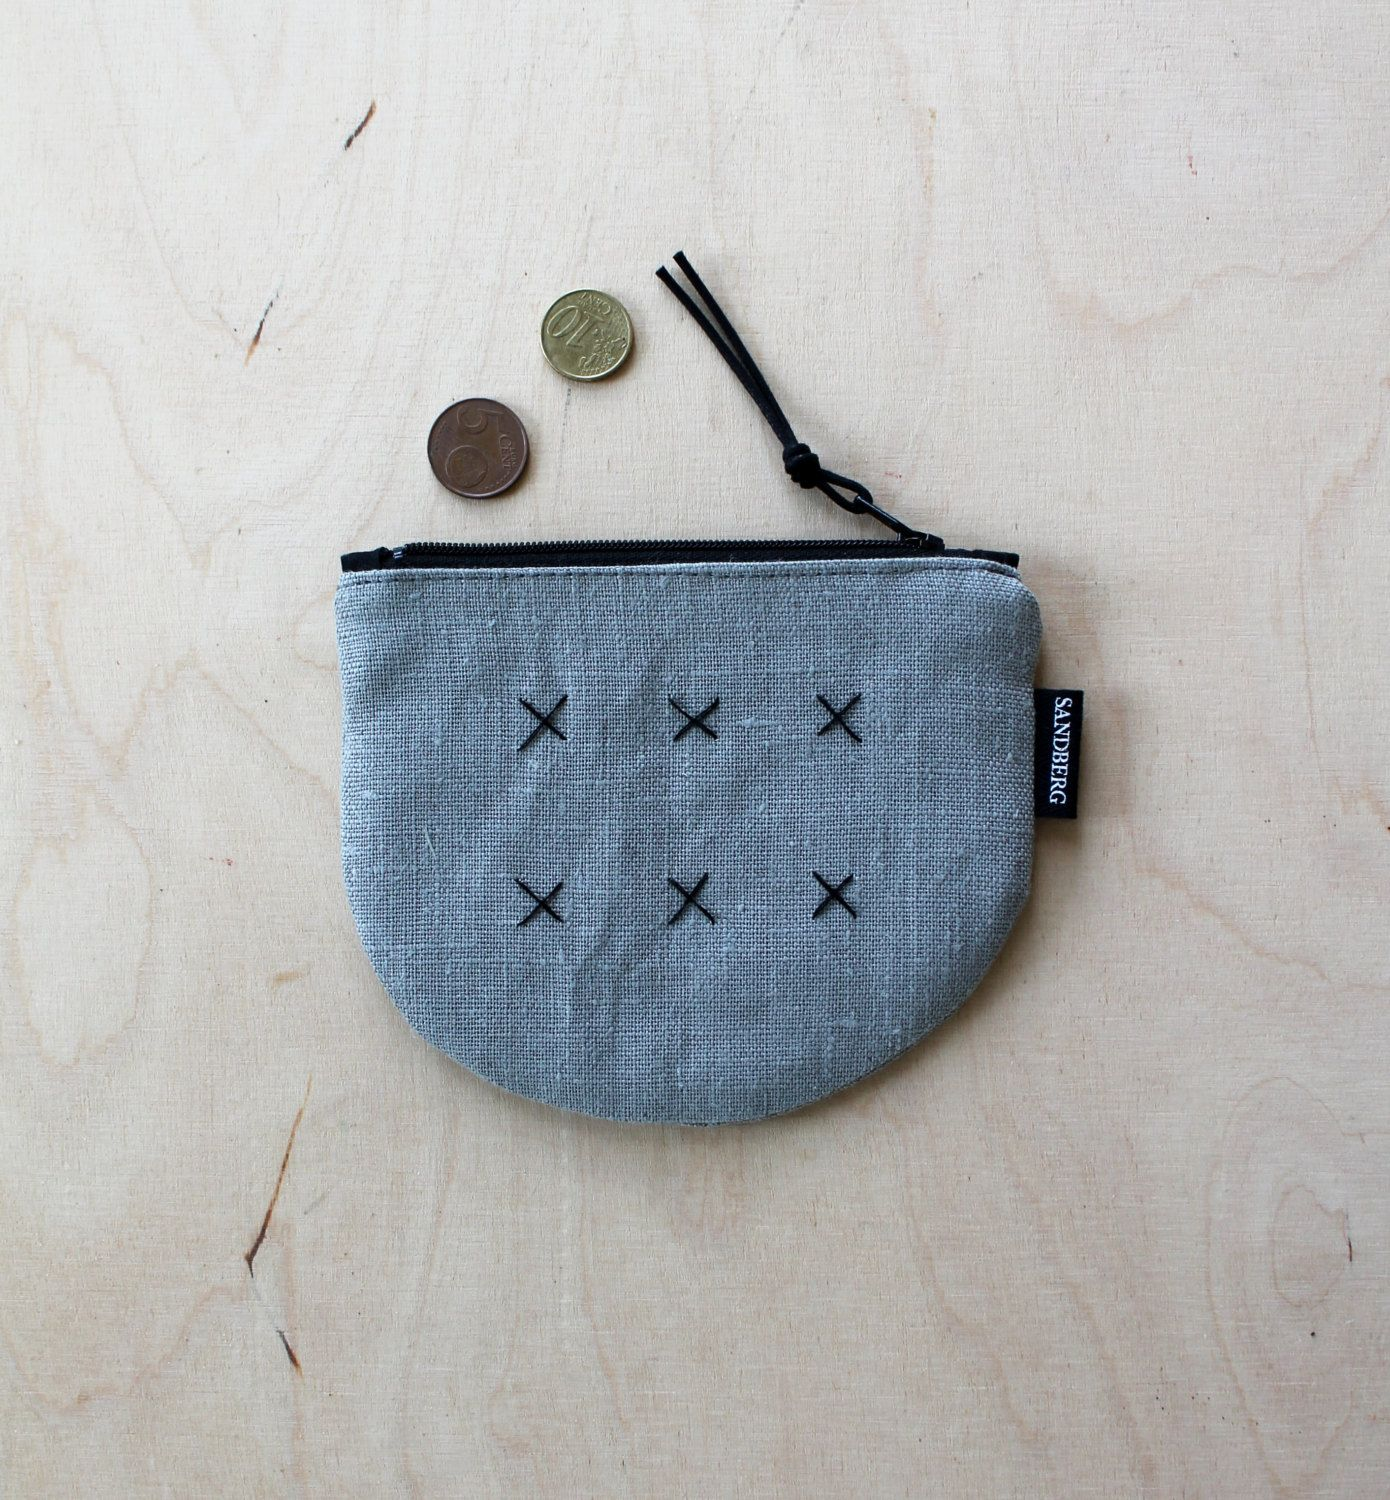 Grey Linen Zipper Coin Pouch, Linen purse, Small Linen Pouch, Embroidered Linen Pouch, Handmade Sustainable Accessories, Eco Friendly Bags by DesignSandberg on Etsy